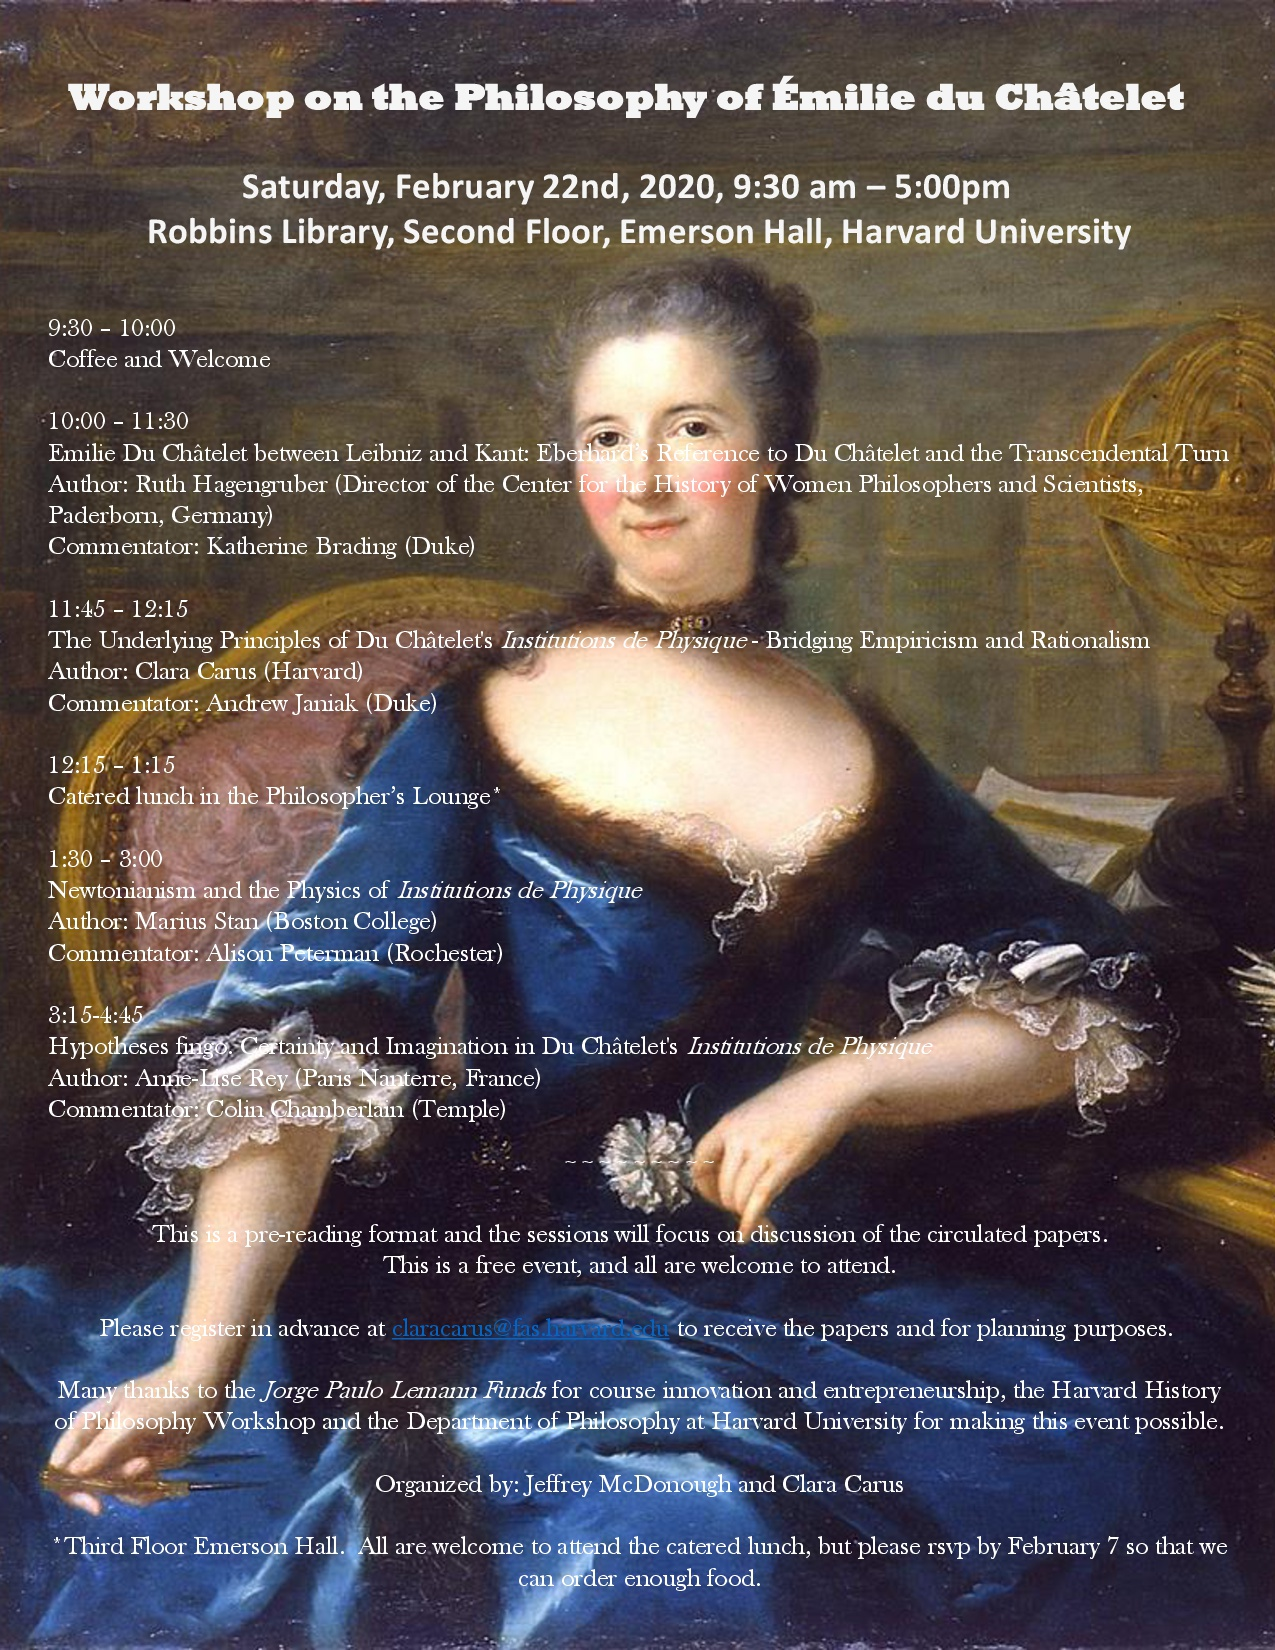 Harvard History of Philosophy Workshop Emilie Du Châtelet